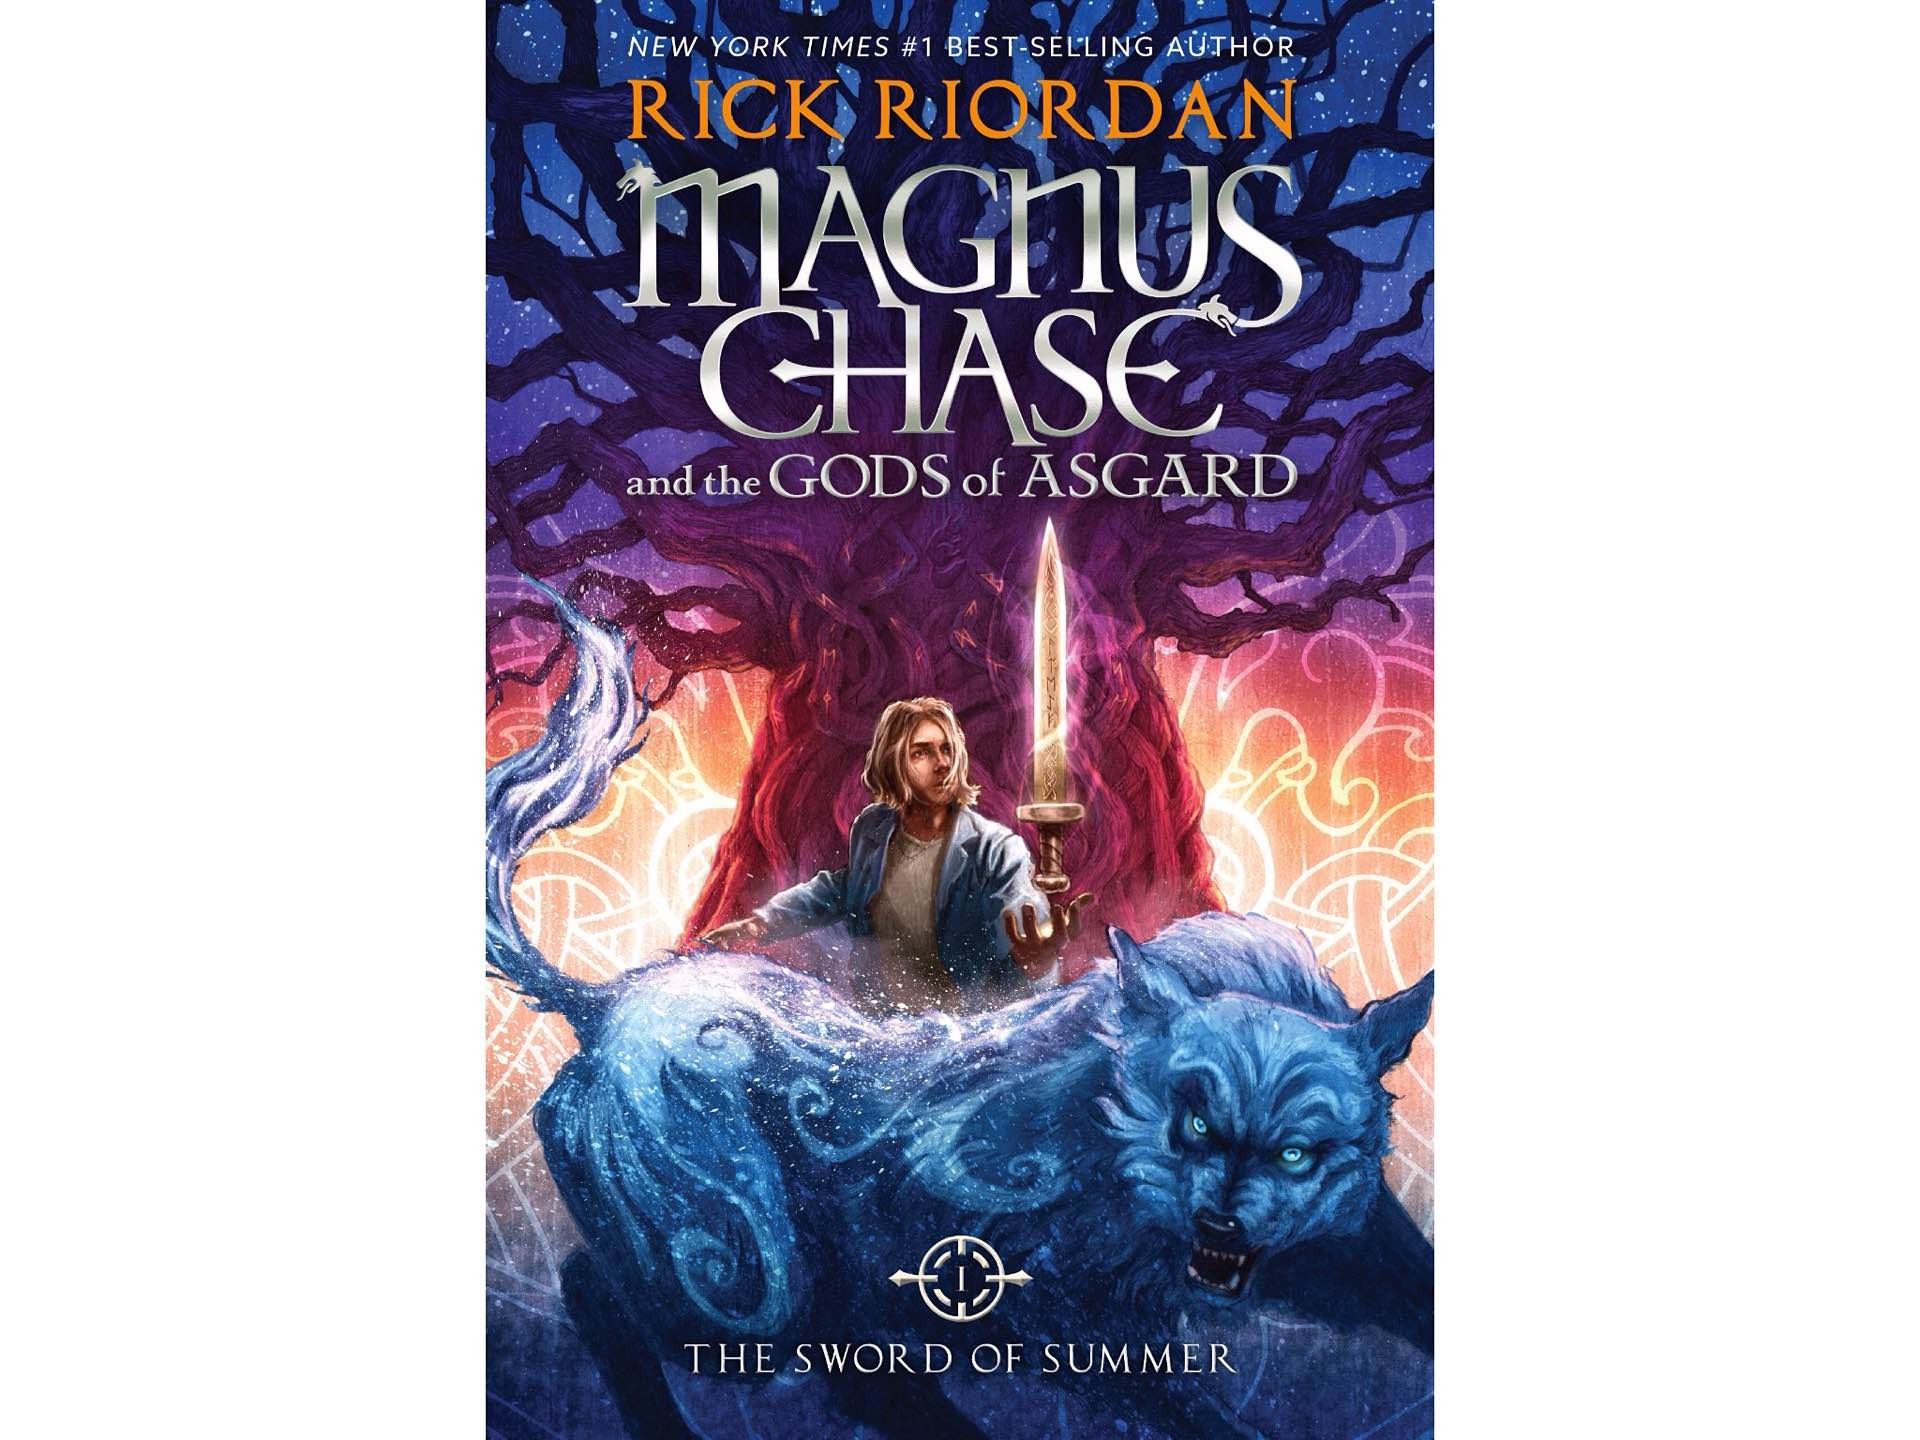 Magnus Chase and the Gods of Asgard: The Sword of Summer by Rick Riordan.